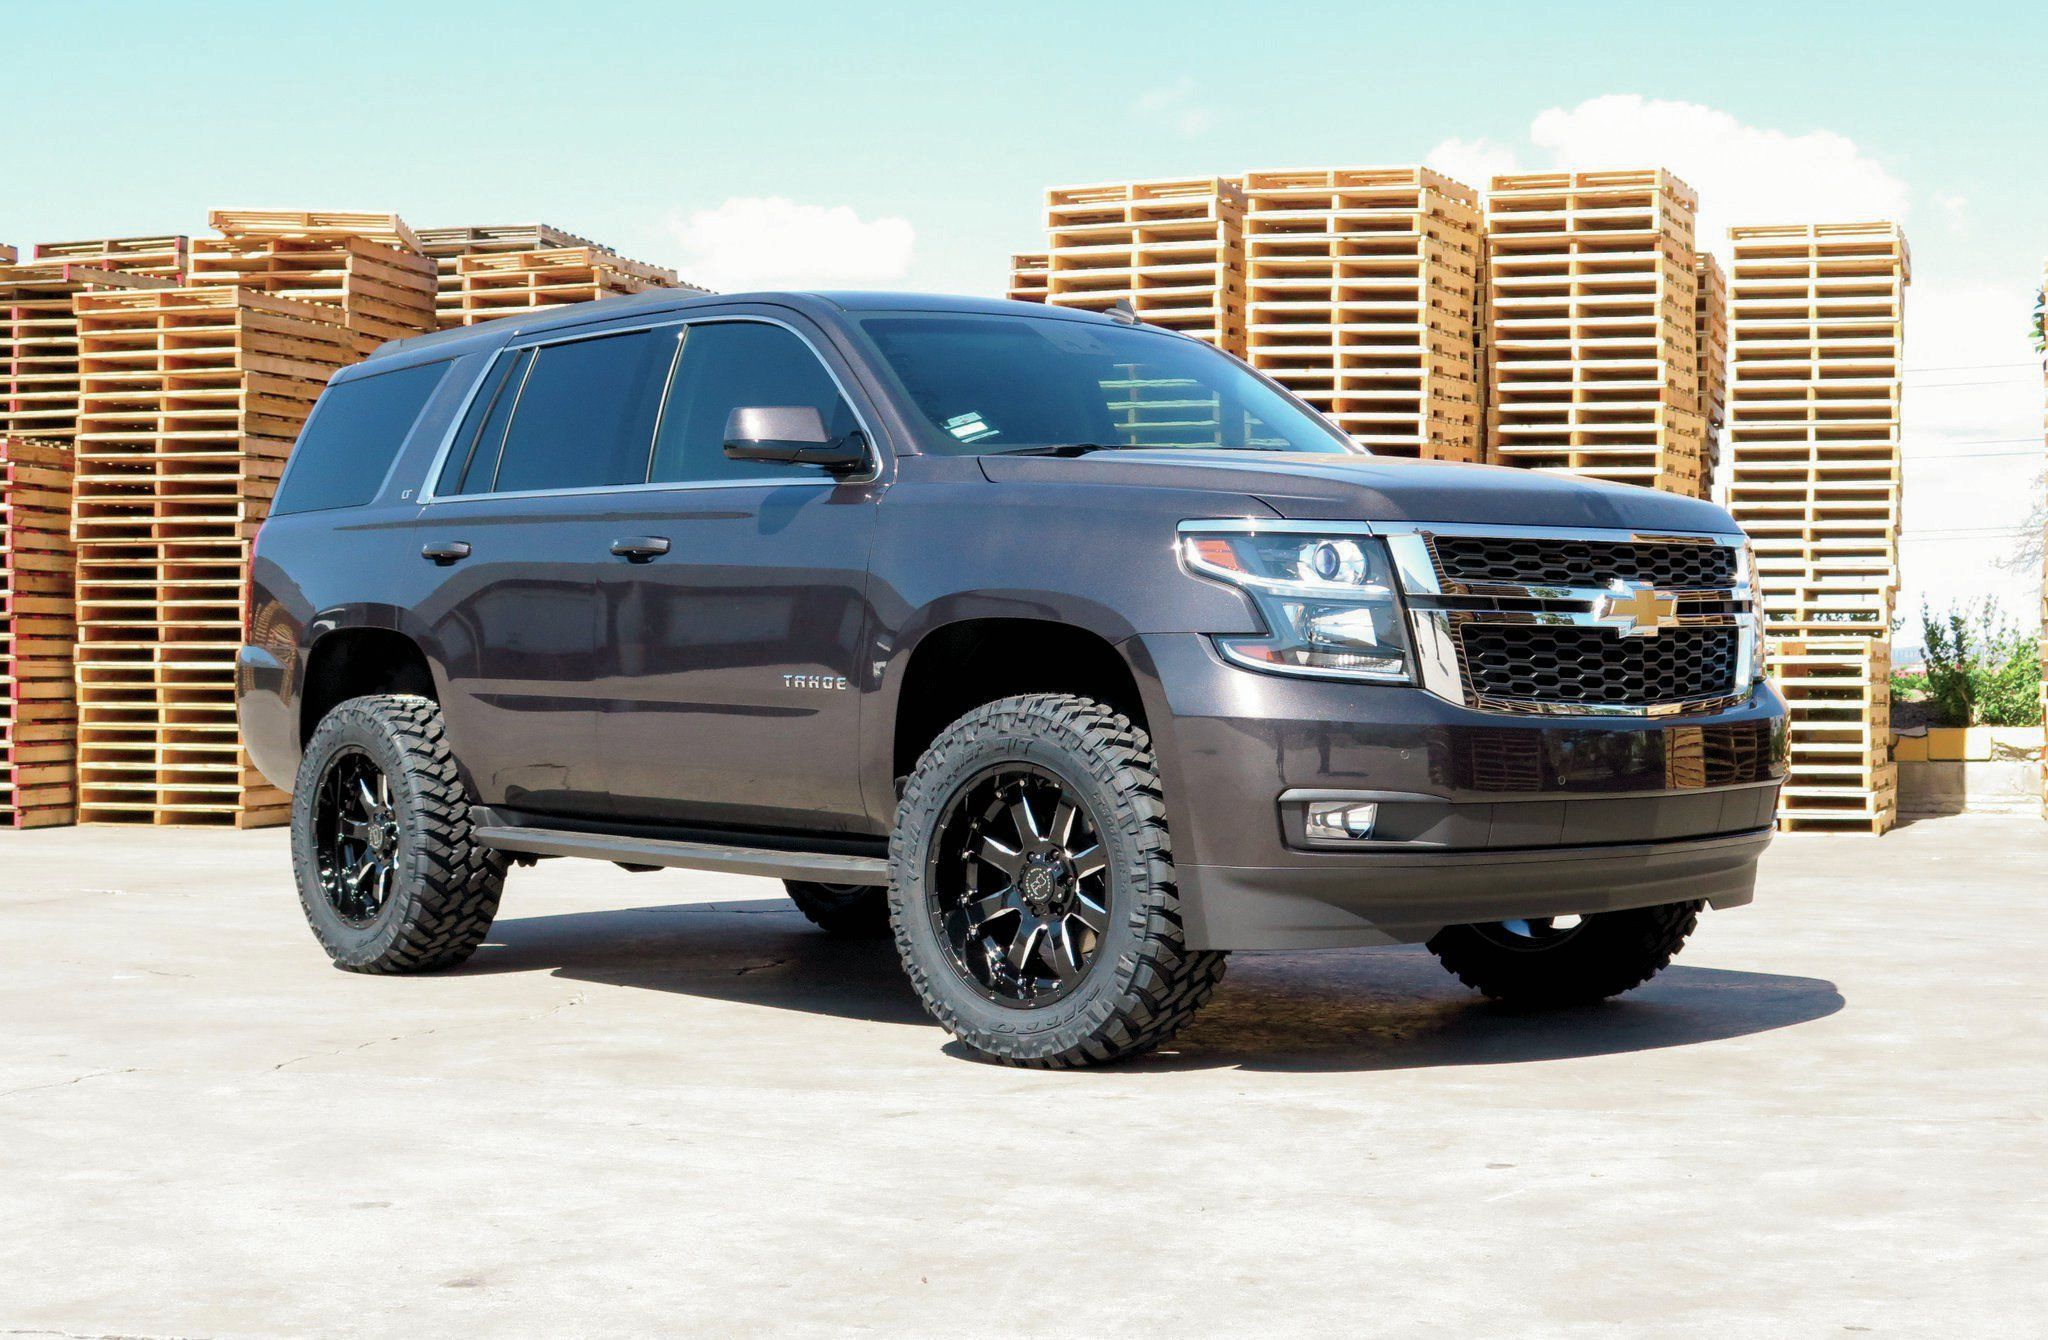 The 25 best 2015 chevy tahoe ideas on pinterest tahoe car chevy yukon and chevrolet tahoe